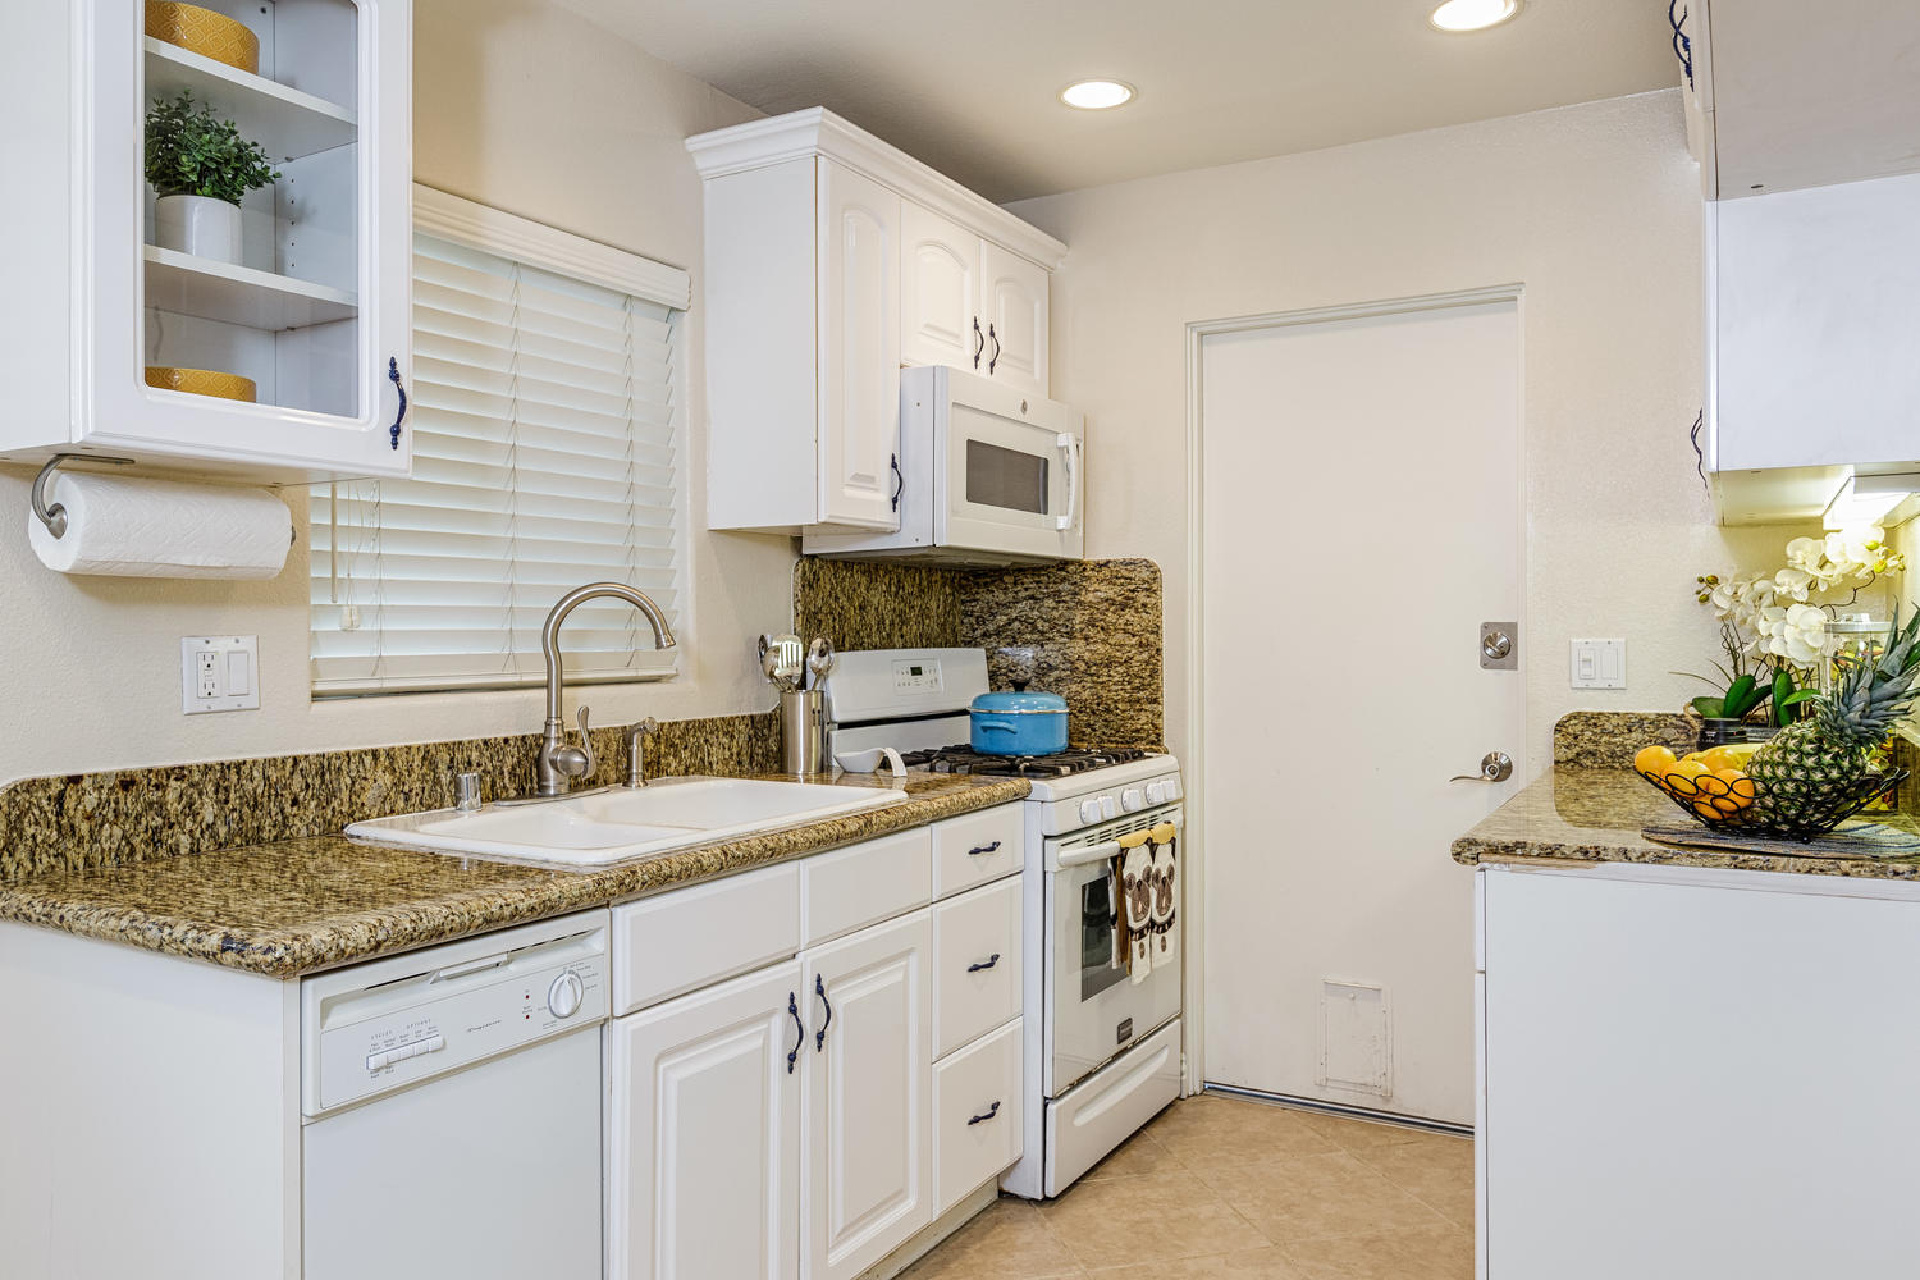 http://www.addressrealestate.com/media/images/blogs/38/2/b_7-1408-ocean-dr-oxnard-ca-93035-mls-size-005-9-kitchen-1500x1000-72dpi.jpg